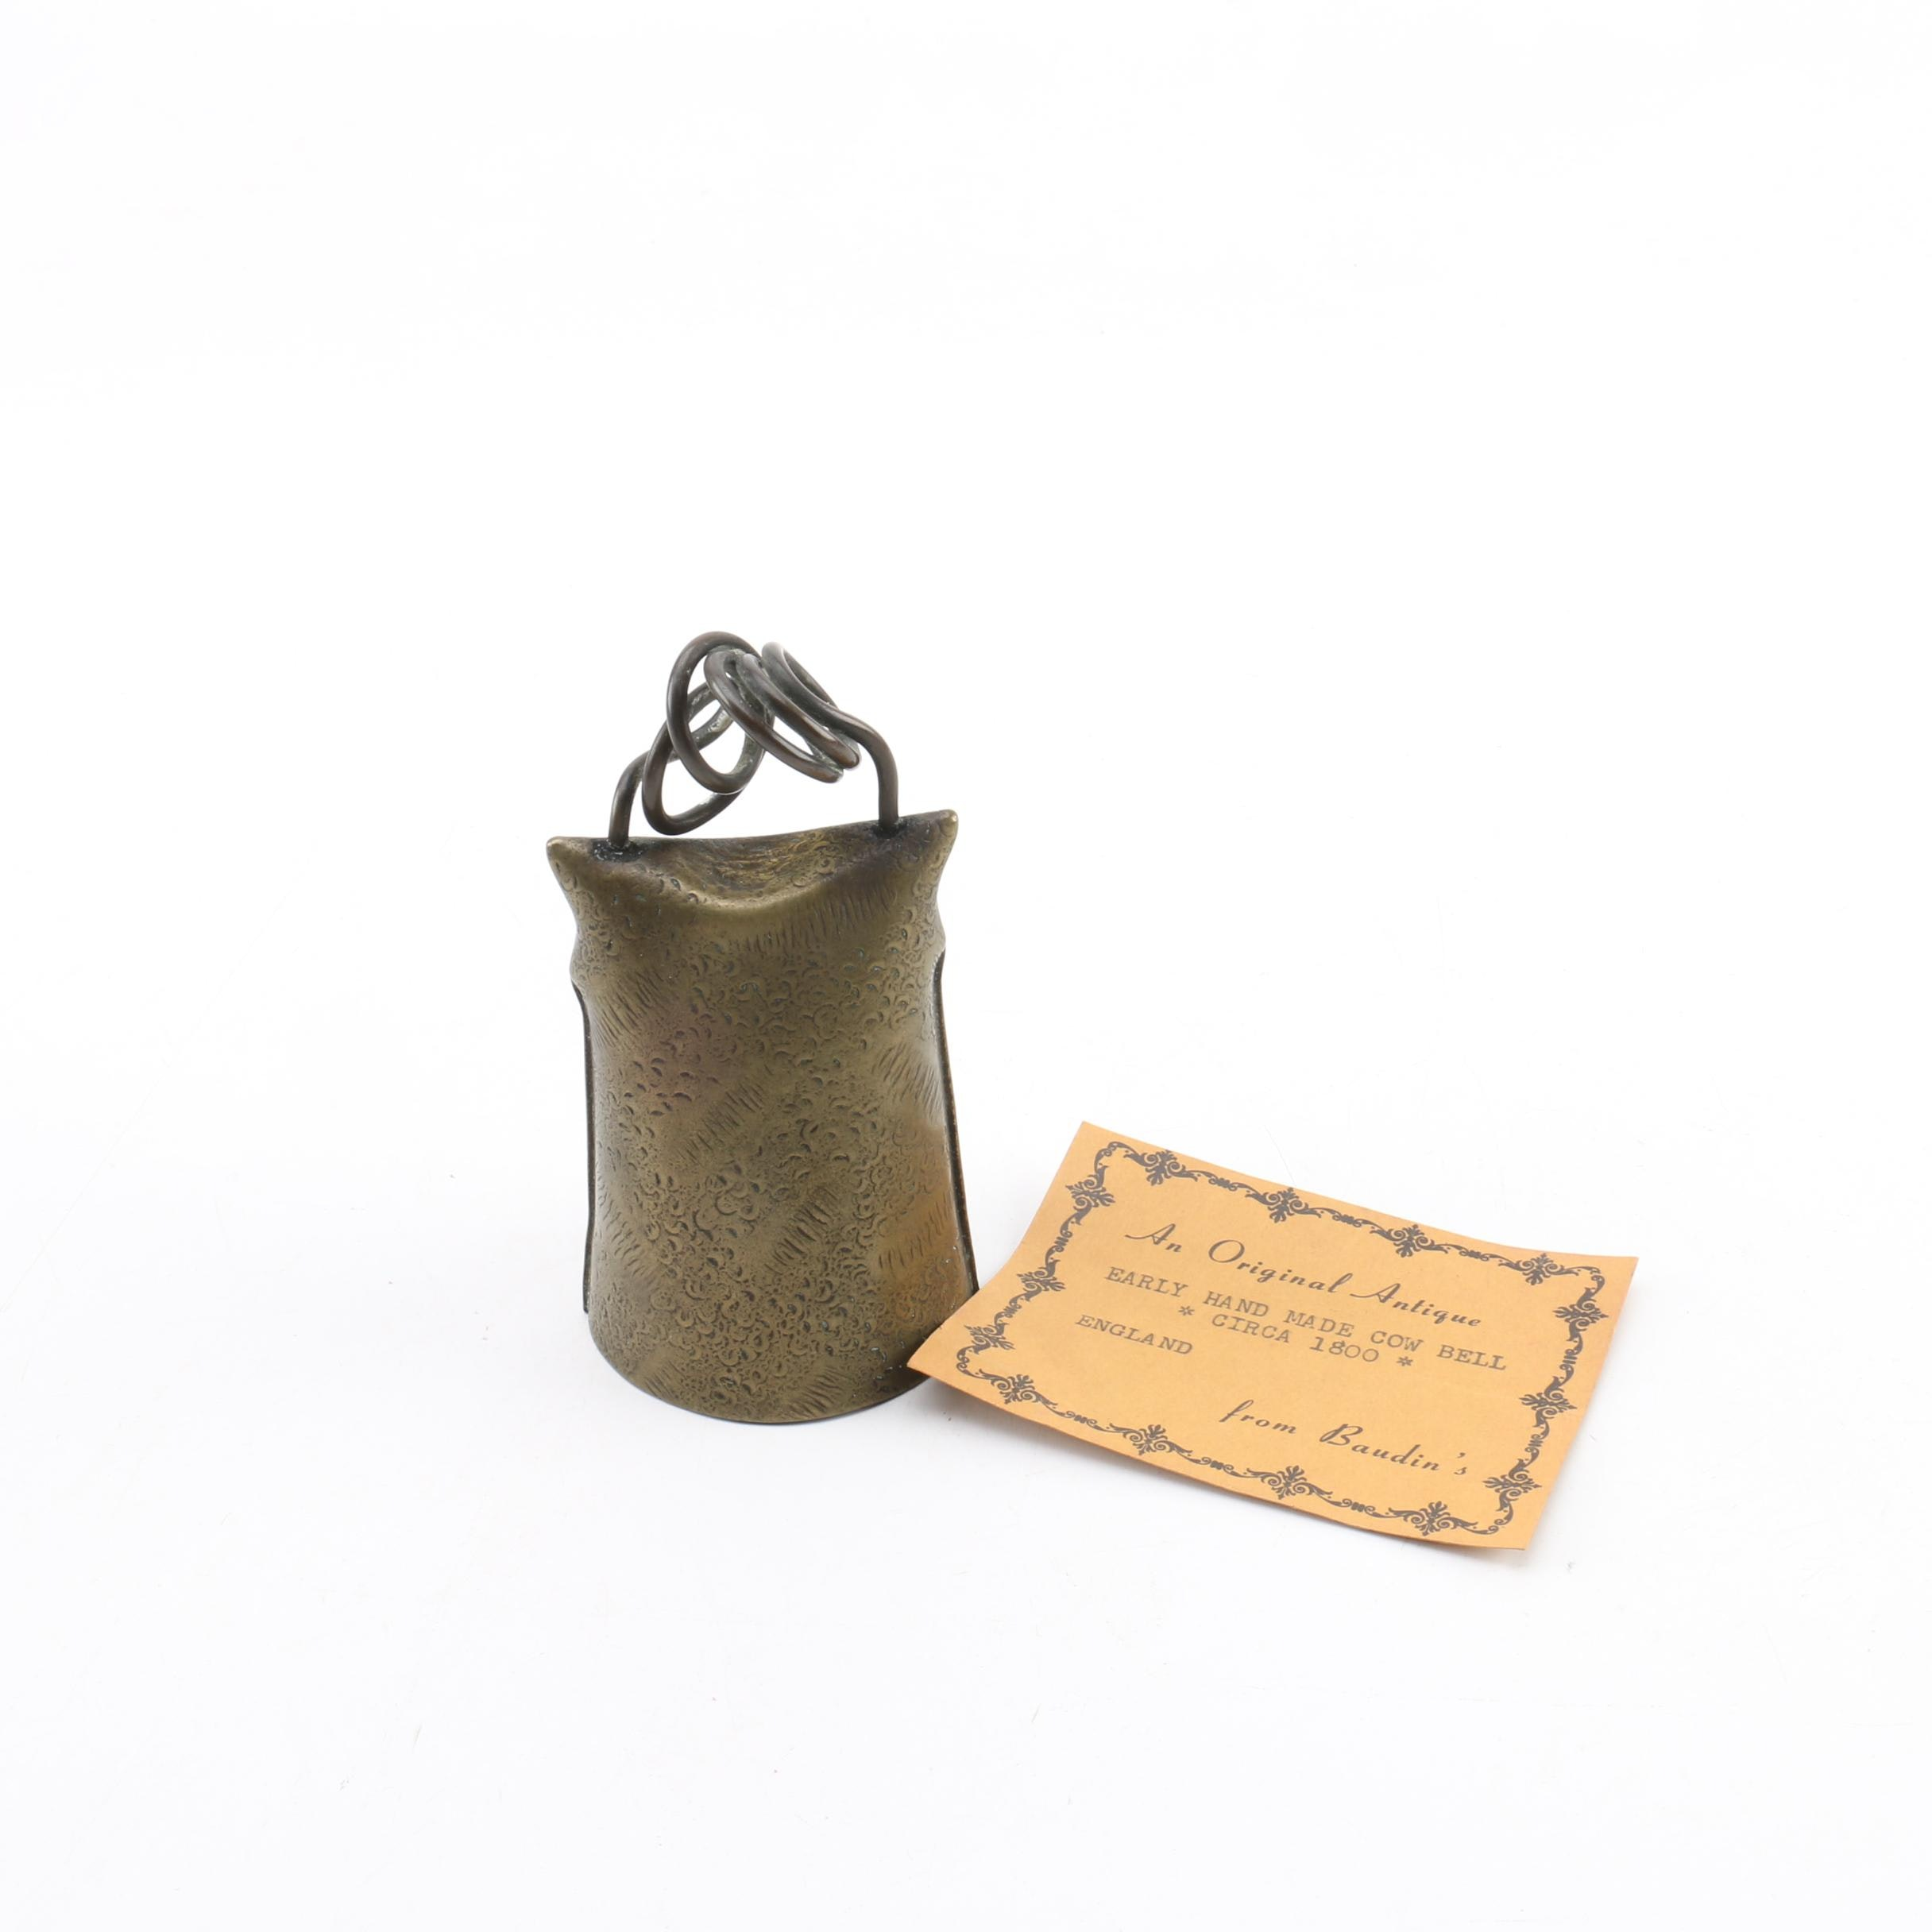 Antique Townsend & Co. Handmade Metal Cowbell